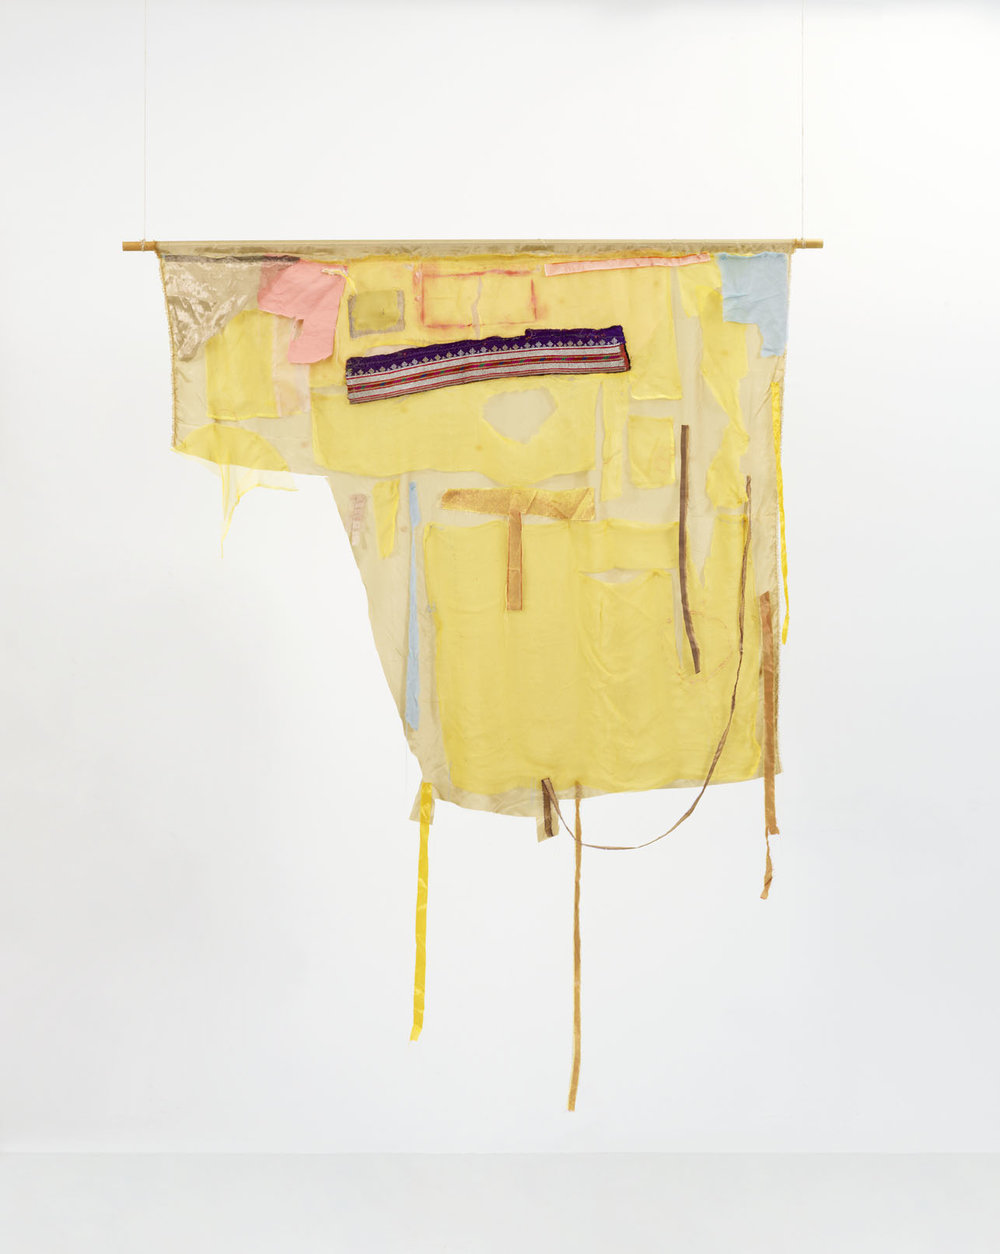 - 26. PRICE: € (EUR) 4.000. Peter Brandt. Yes and More No, 2016-17. Sculptural two-sided banner, applicated fabric, embroidery, pearls, oil paint, pencil and wood. 193 x 135 x 2 cm.